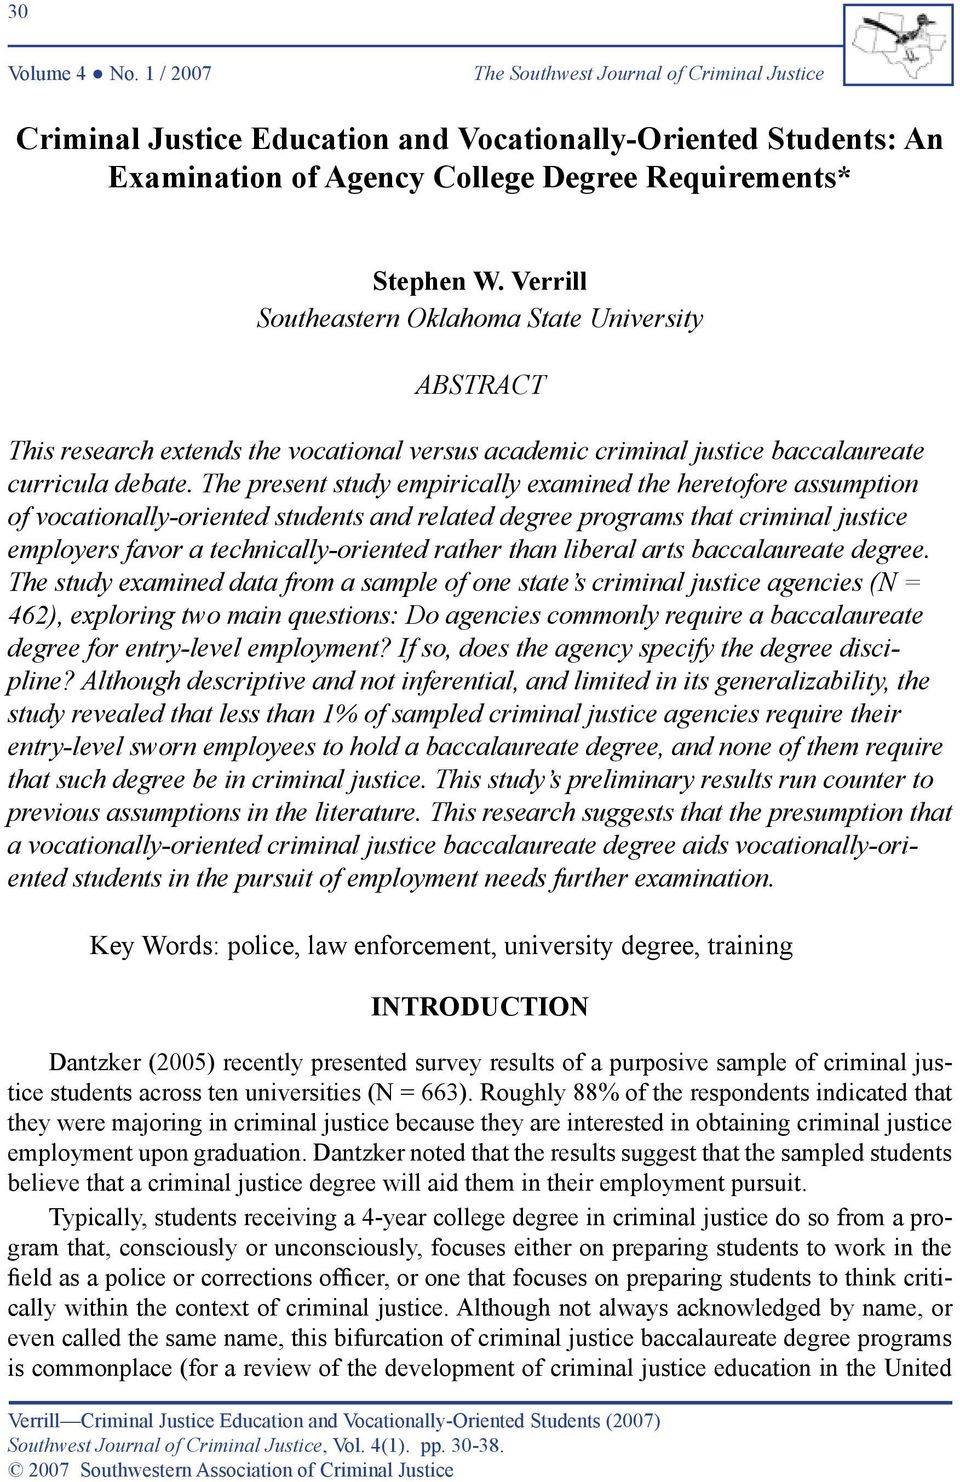 The present study empirically examined the heretofore assumption of vocationally-oriented students and related degree programs that criminal justice employers favor a technically-oriented rather than